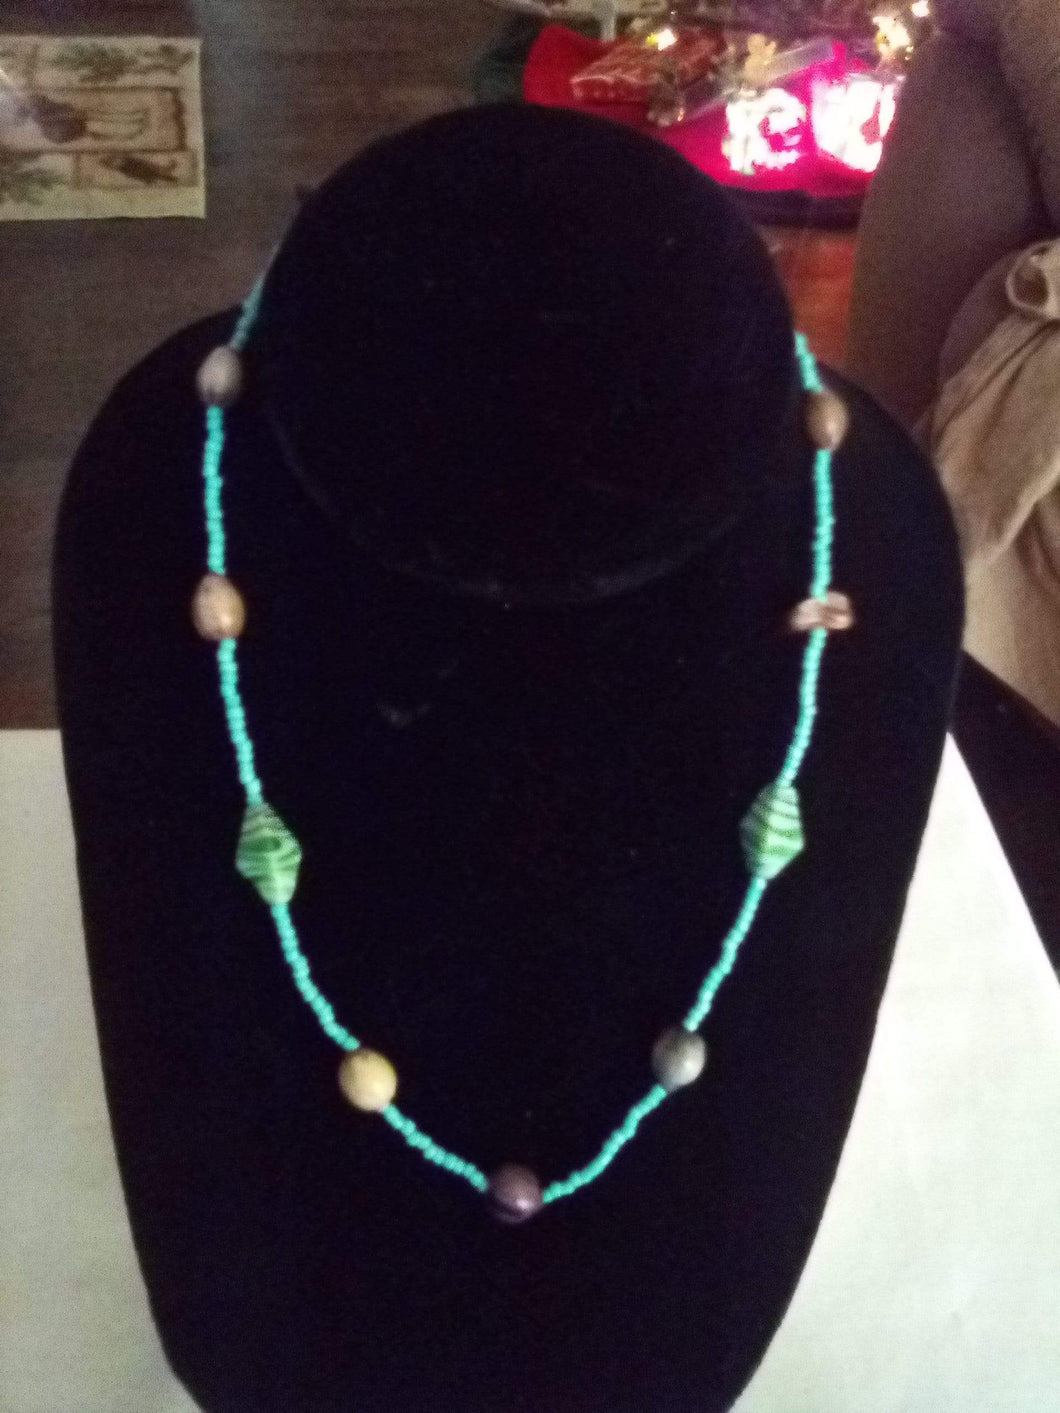 Casual tiny beaded necklace - B&P'sringsnthings